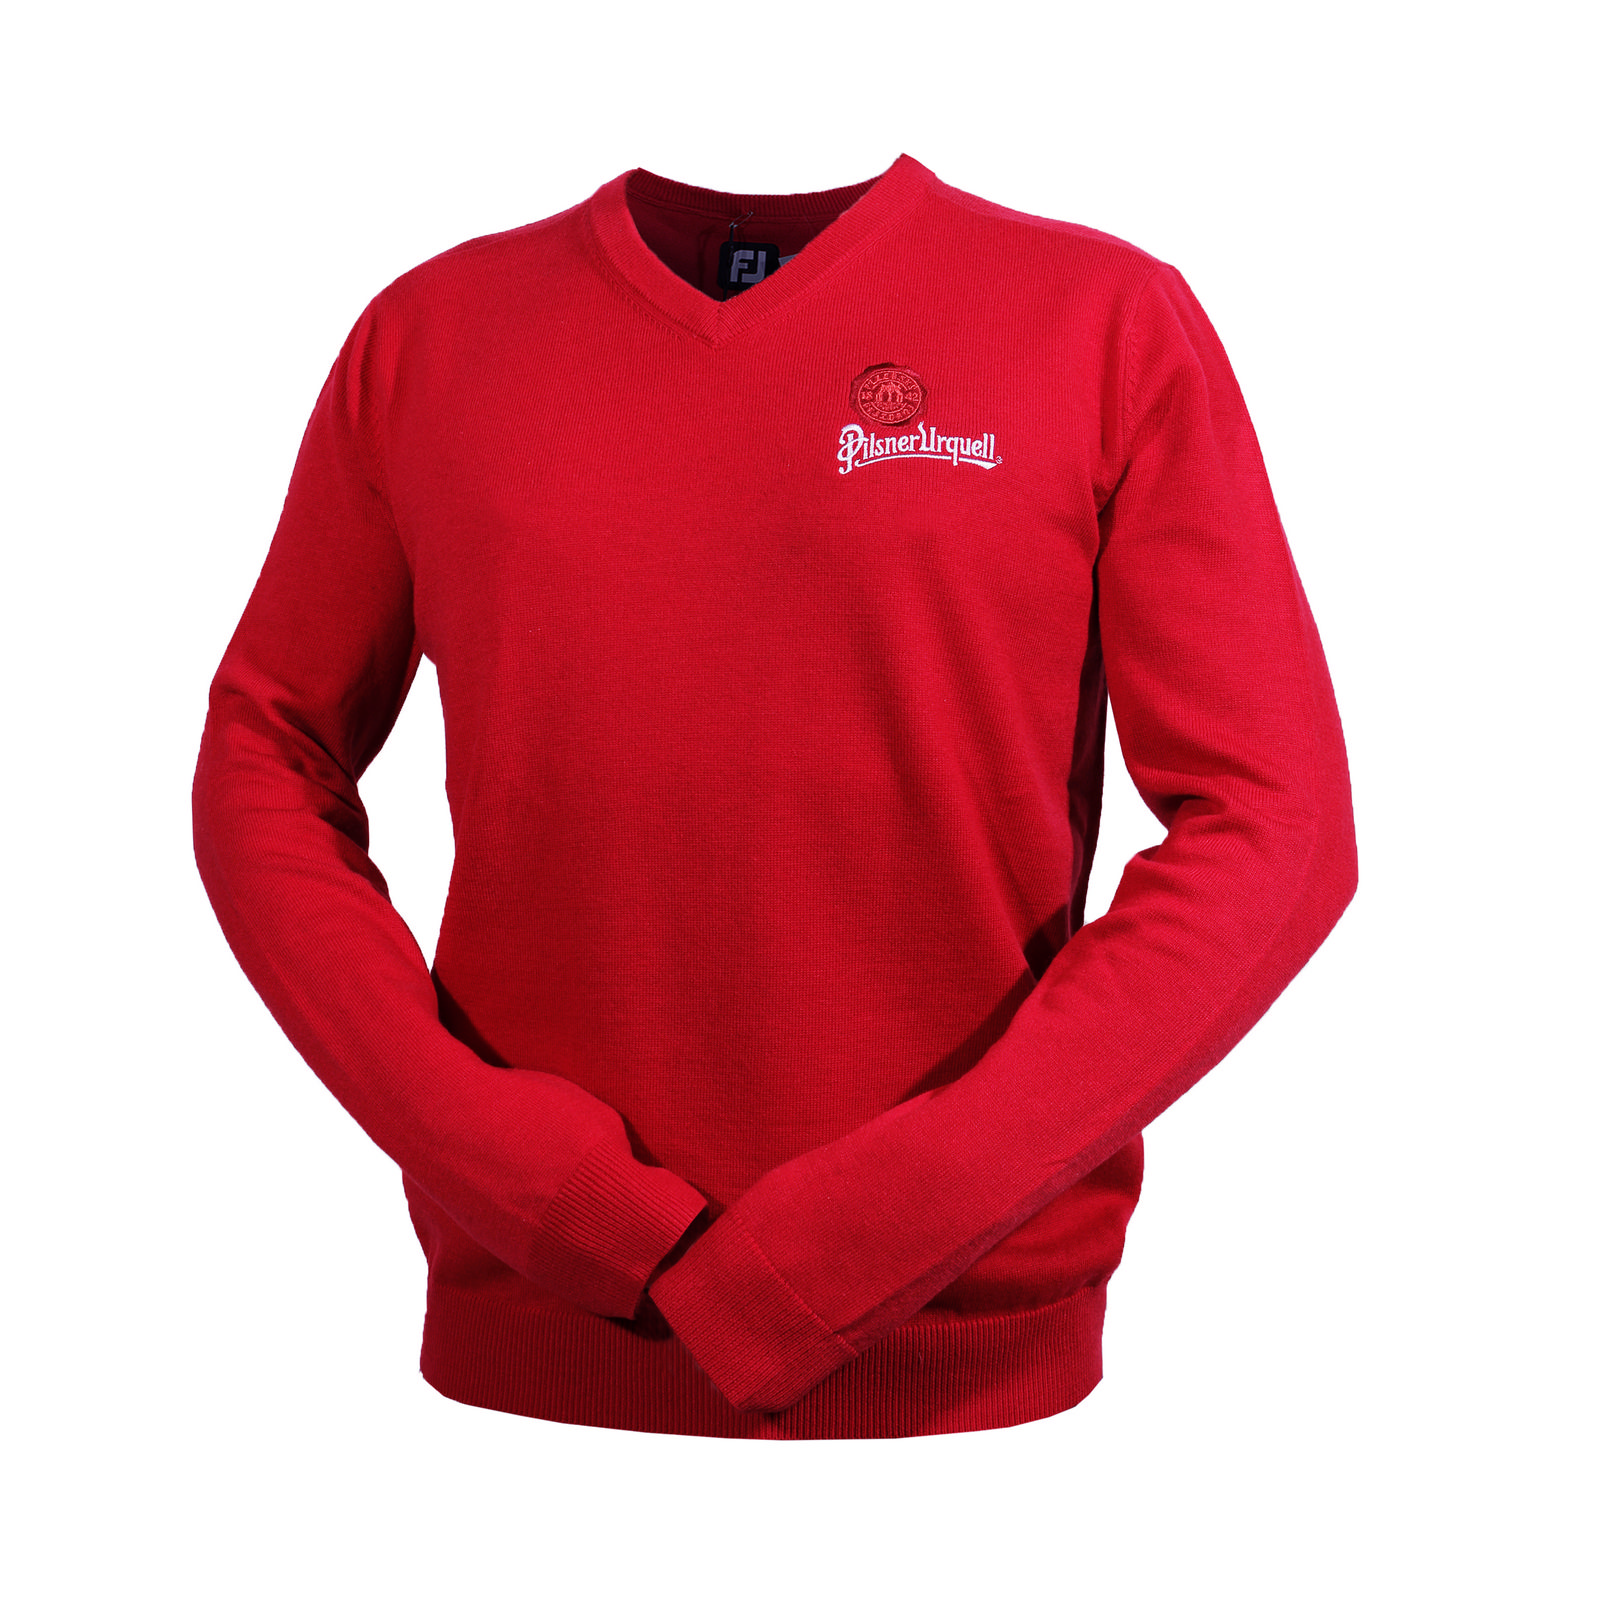 Men's sweater Footjoy red